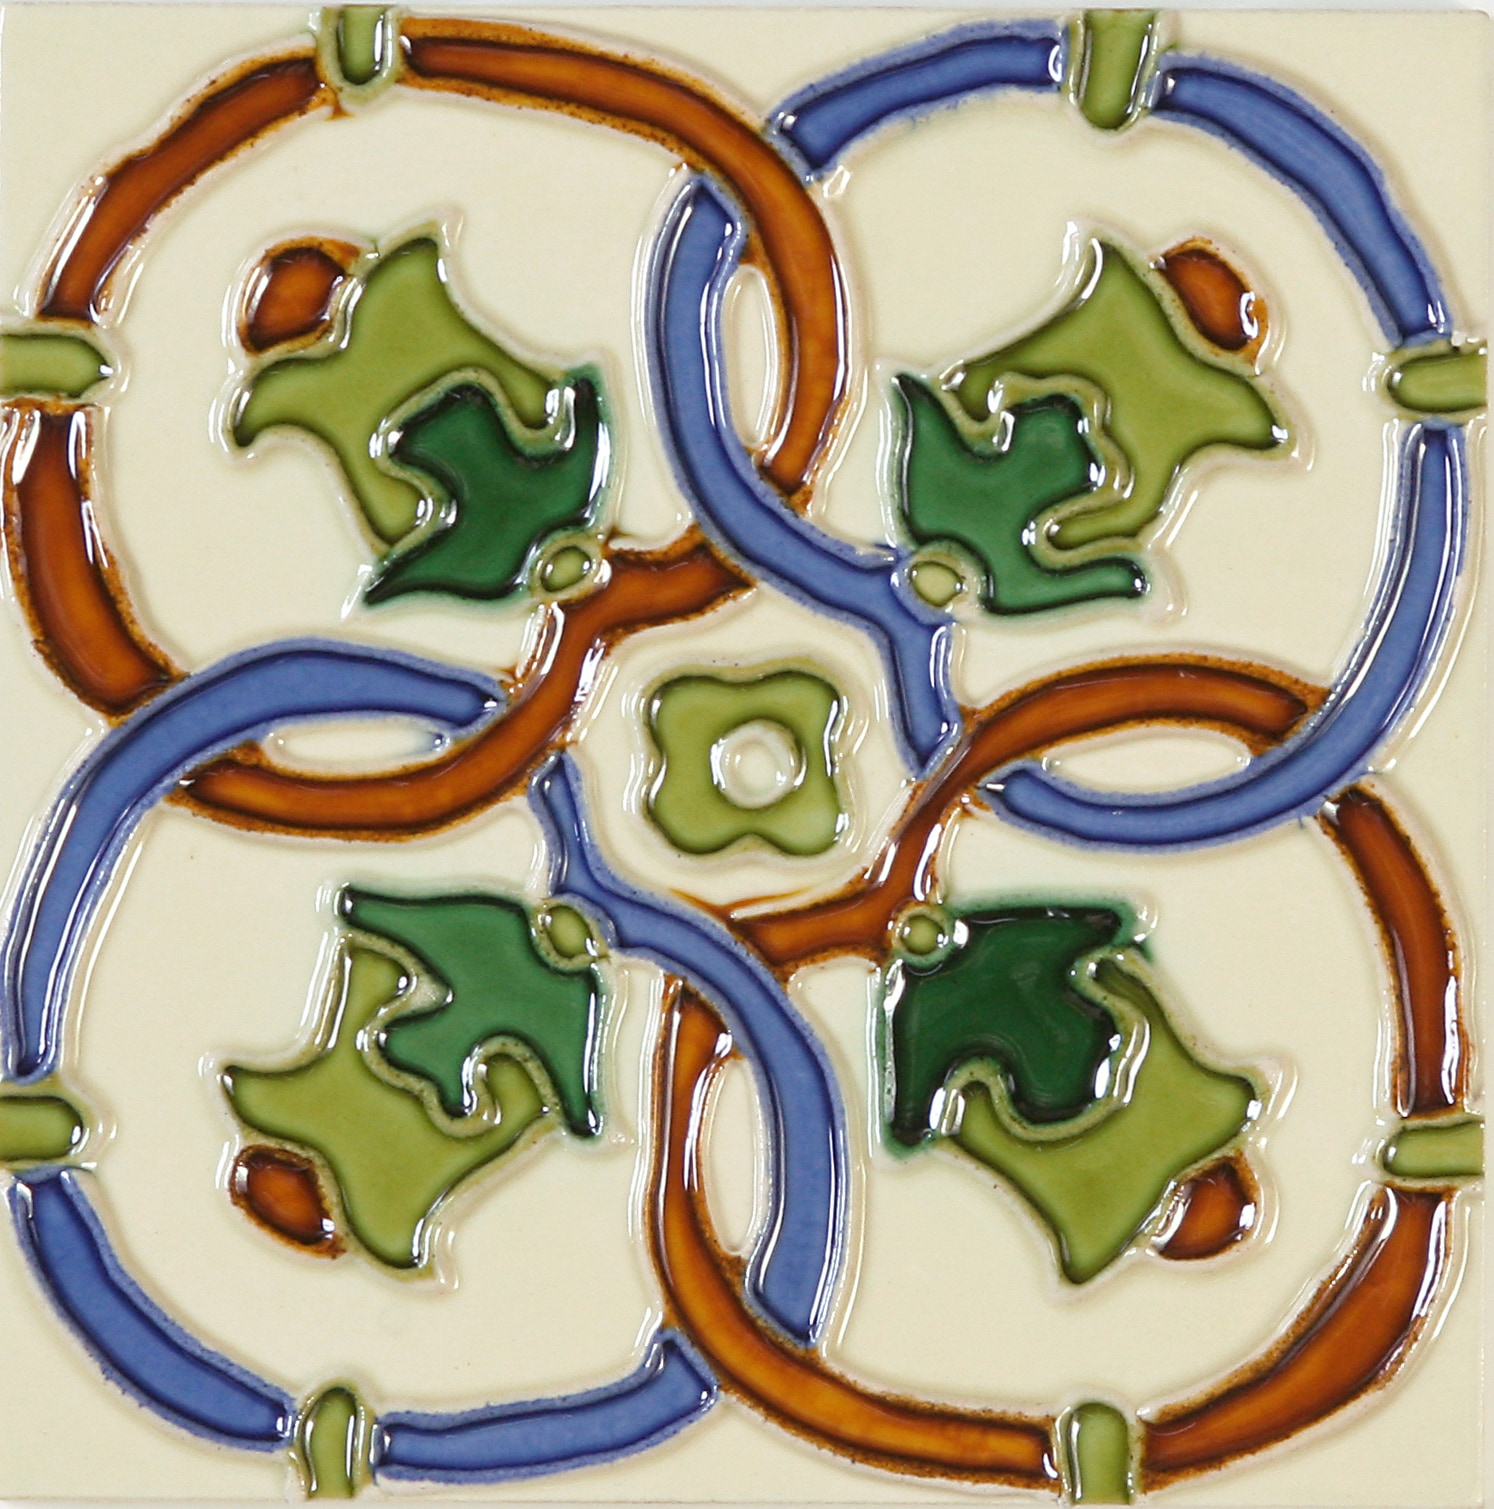 Hand-Painted Ceramic Glazed Wall Tile in Campanas Hand-Painted Ceramic Glazed Wall Tile in Campanas 0